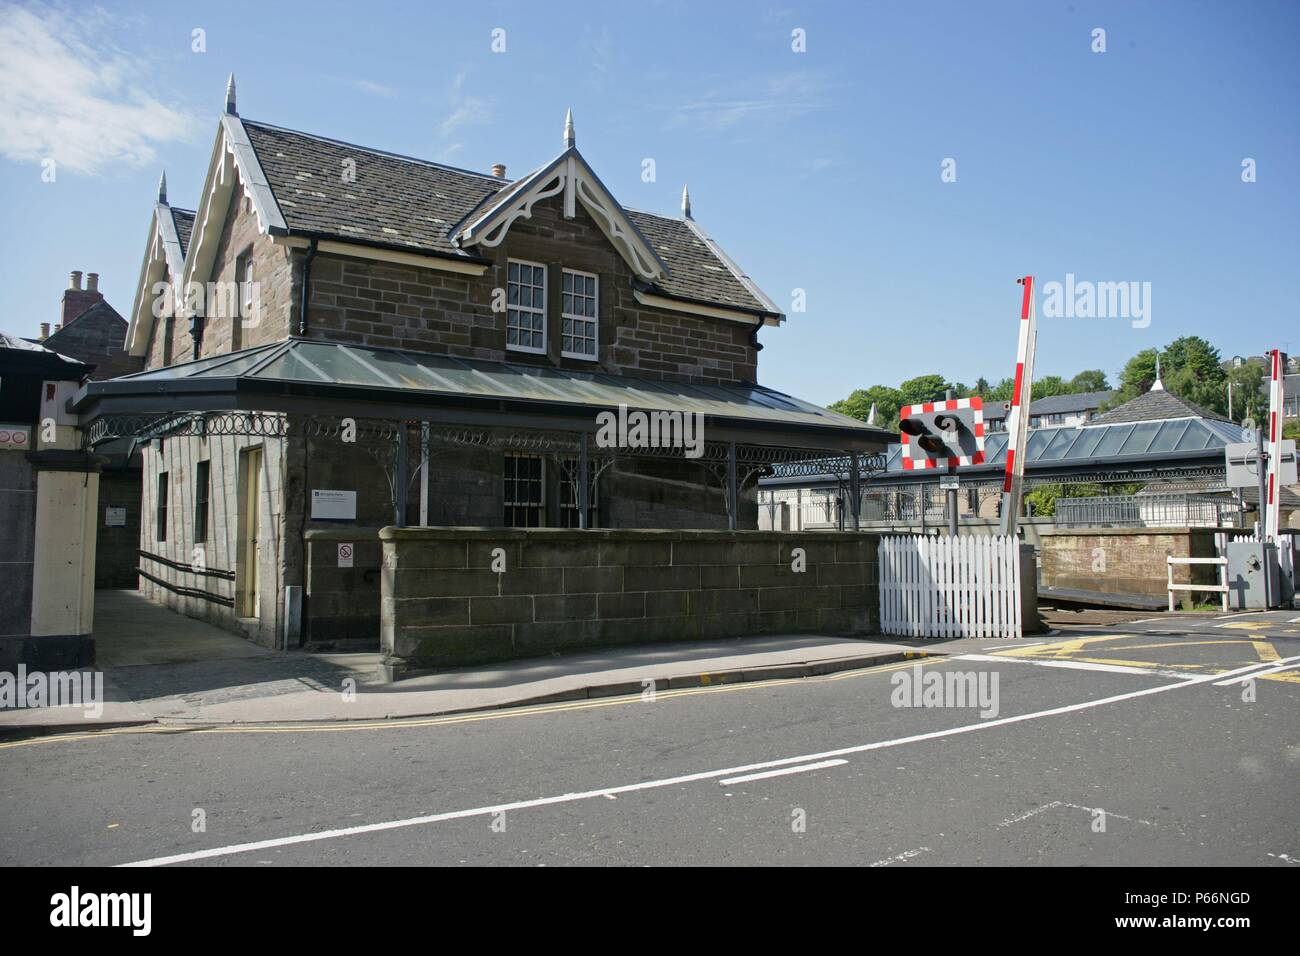 Frontage, main station building and level crossing at Broughty Ferry station, Tayside. 2007 - Stock Image